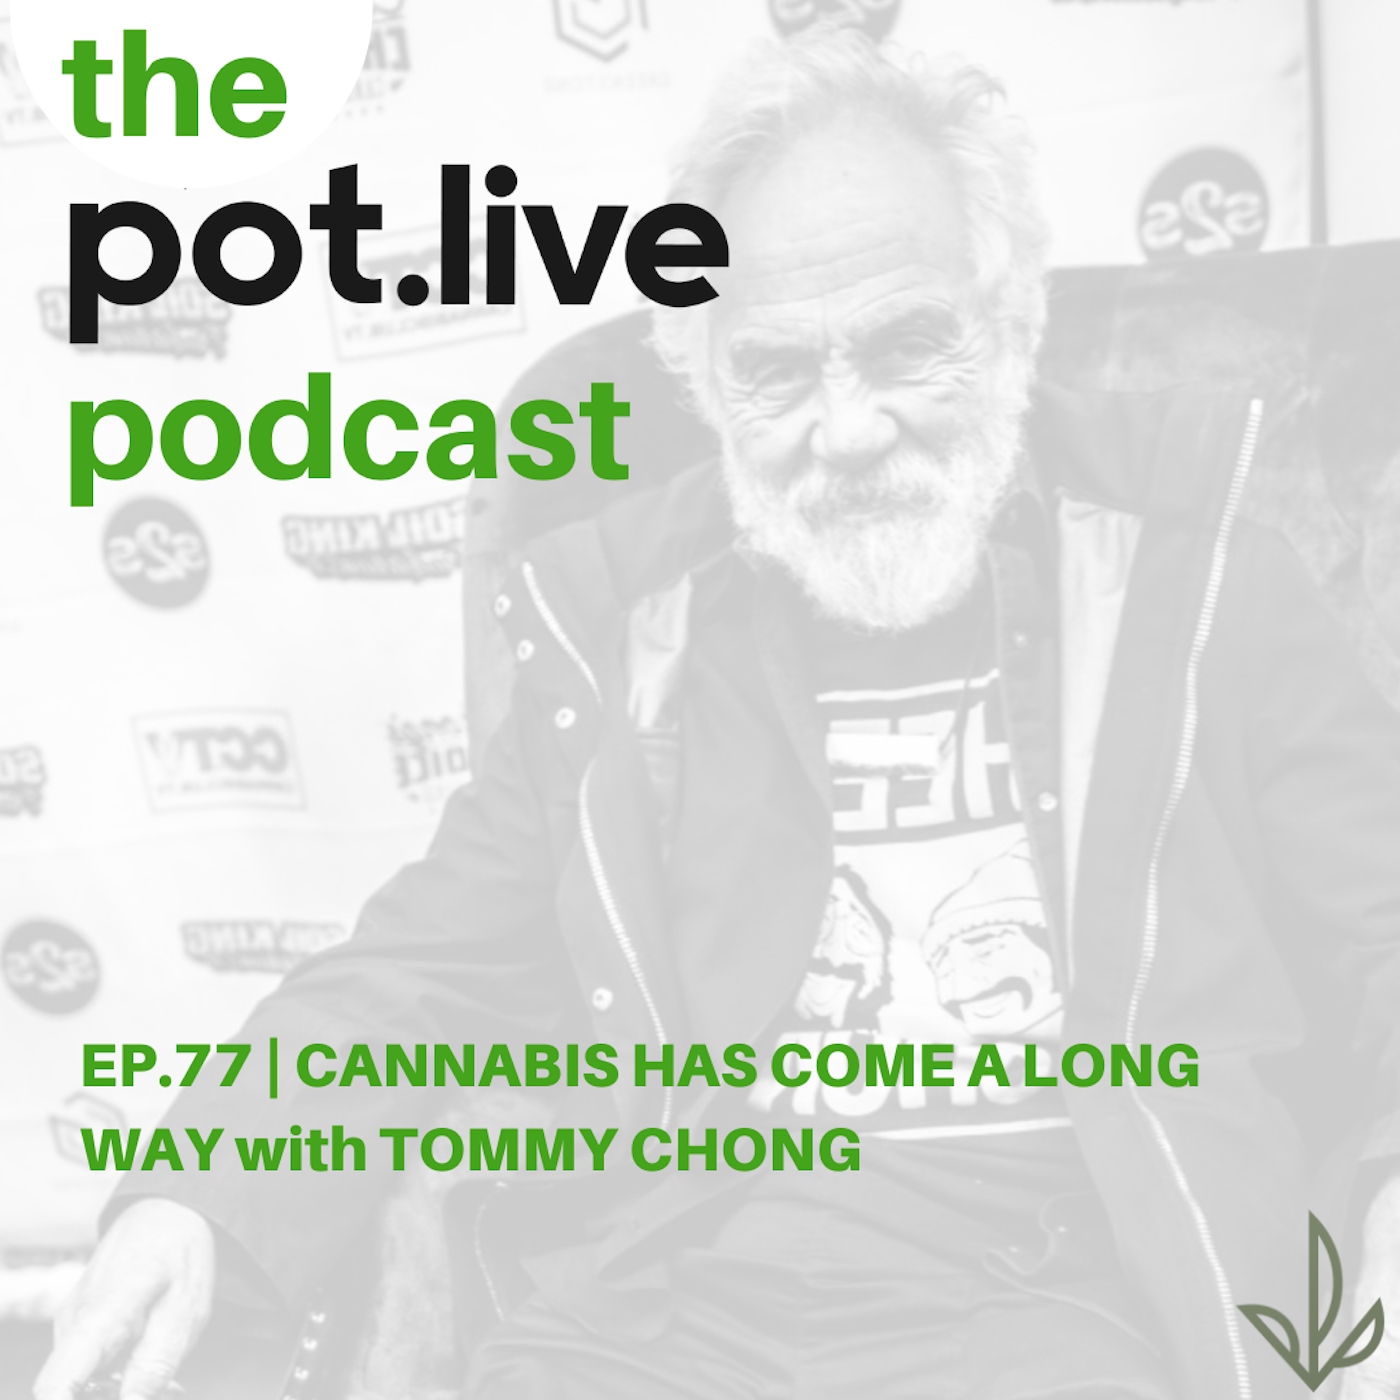 Ep.77 | Cannabis Has Come A Long Way with Tommy Chong